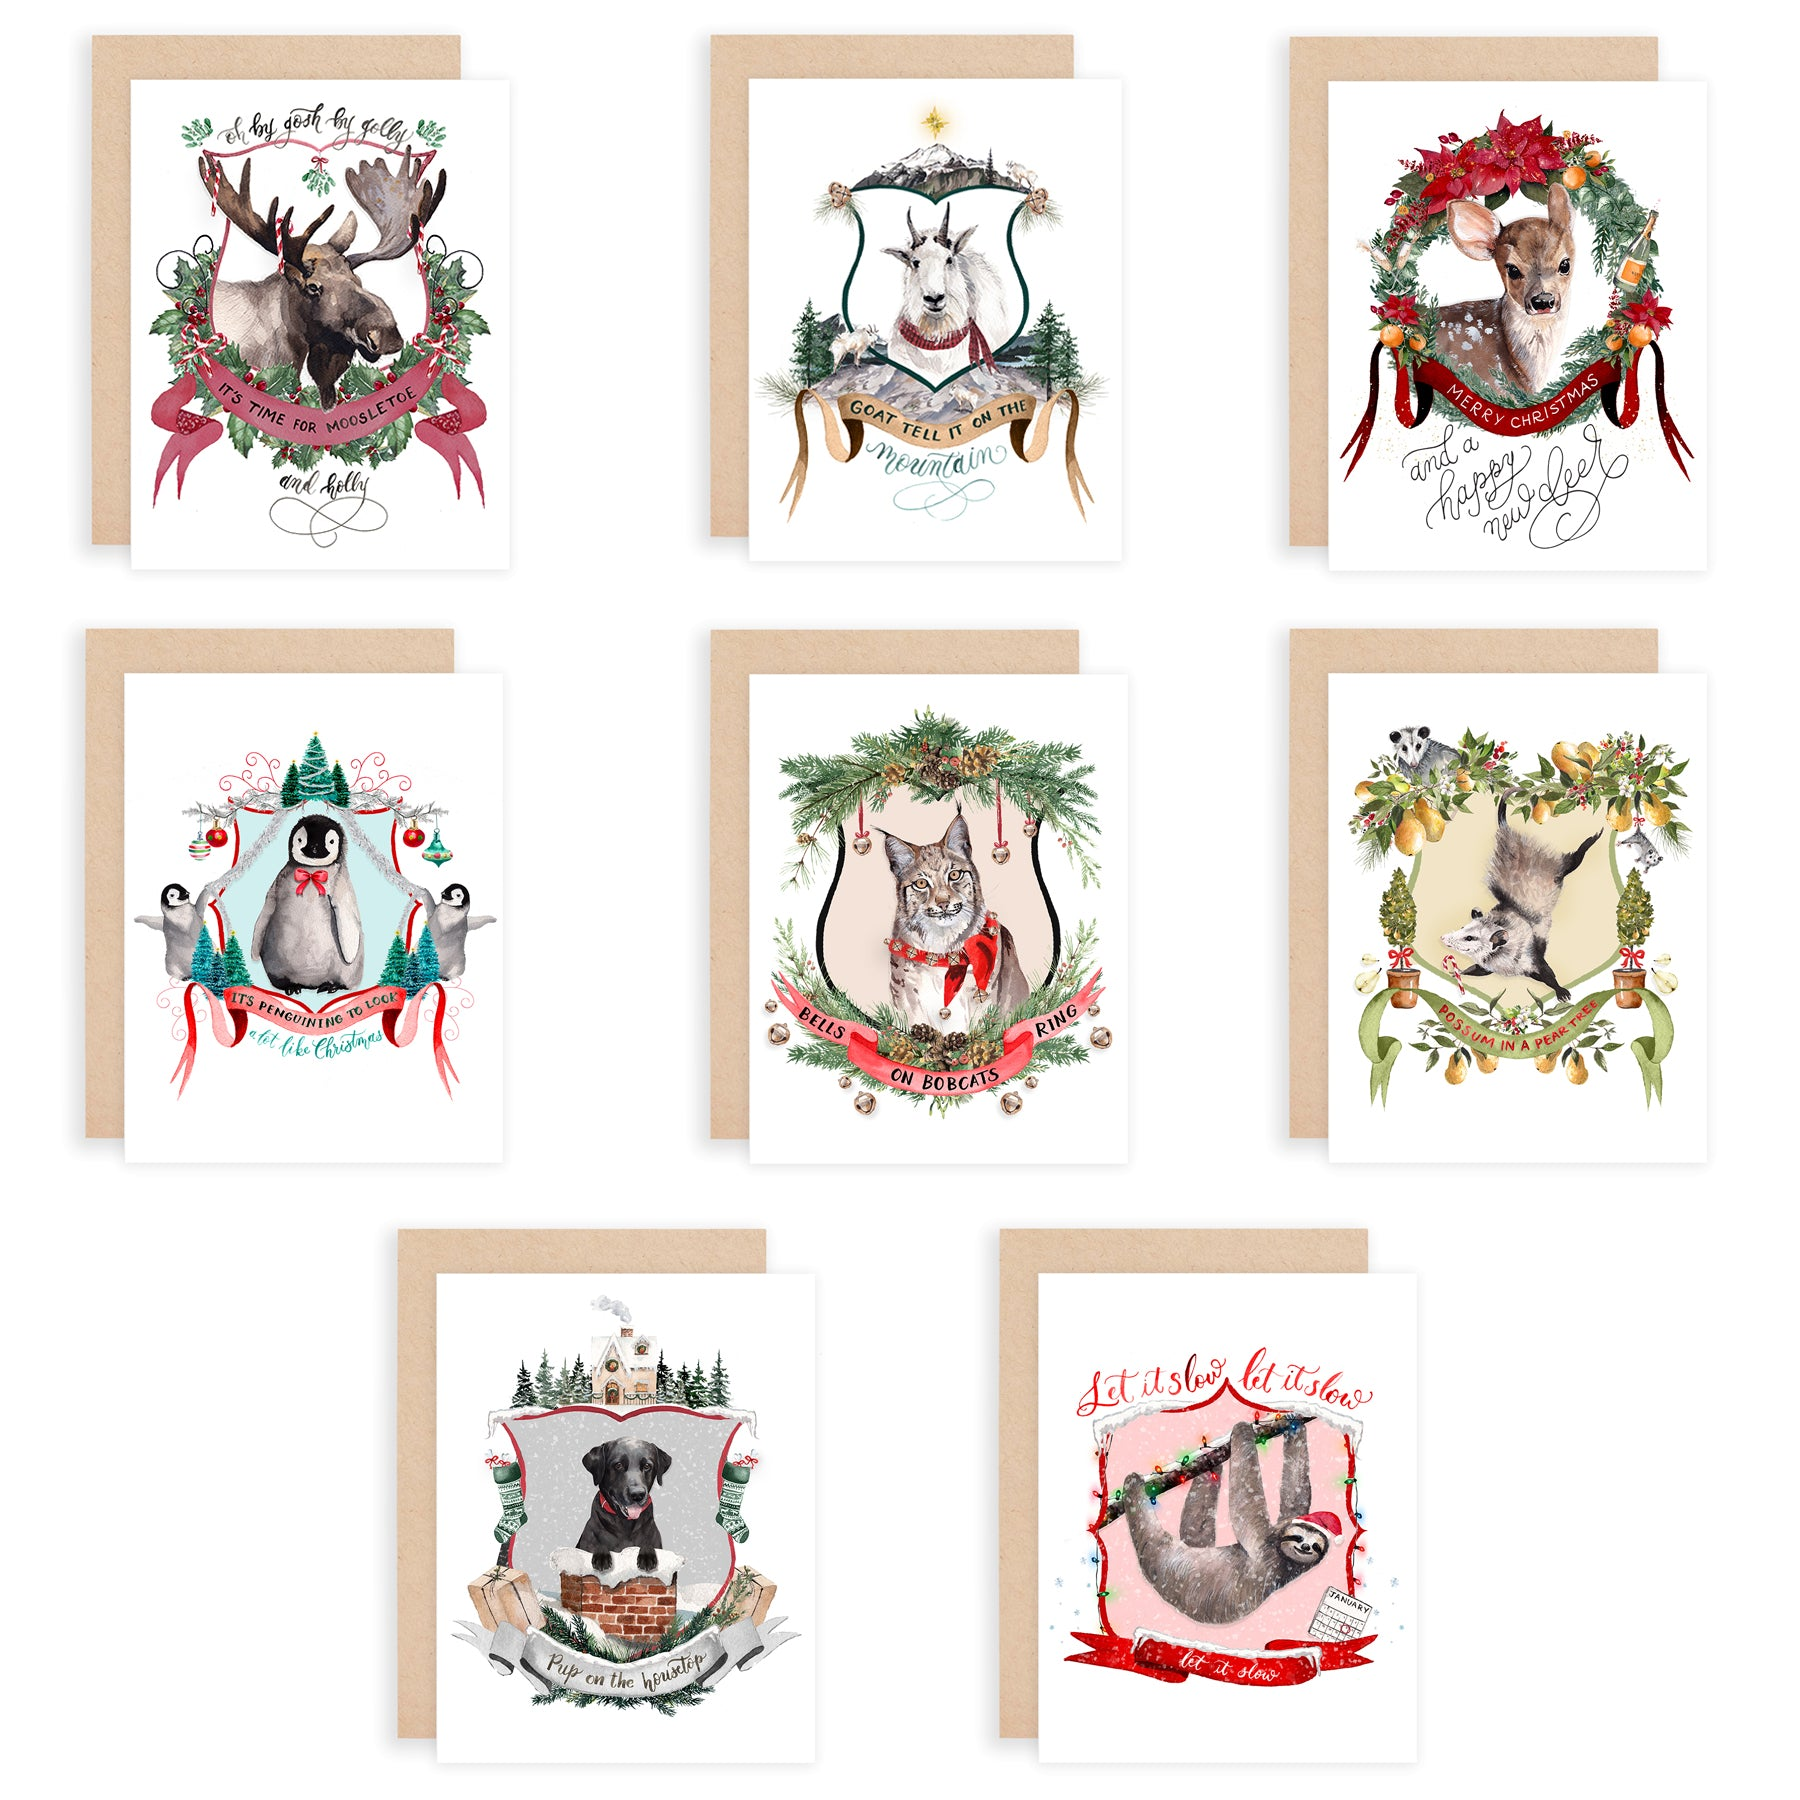 Christmas Crests Collection No. 3 Assorted Greeting Card Box Set